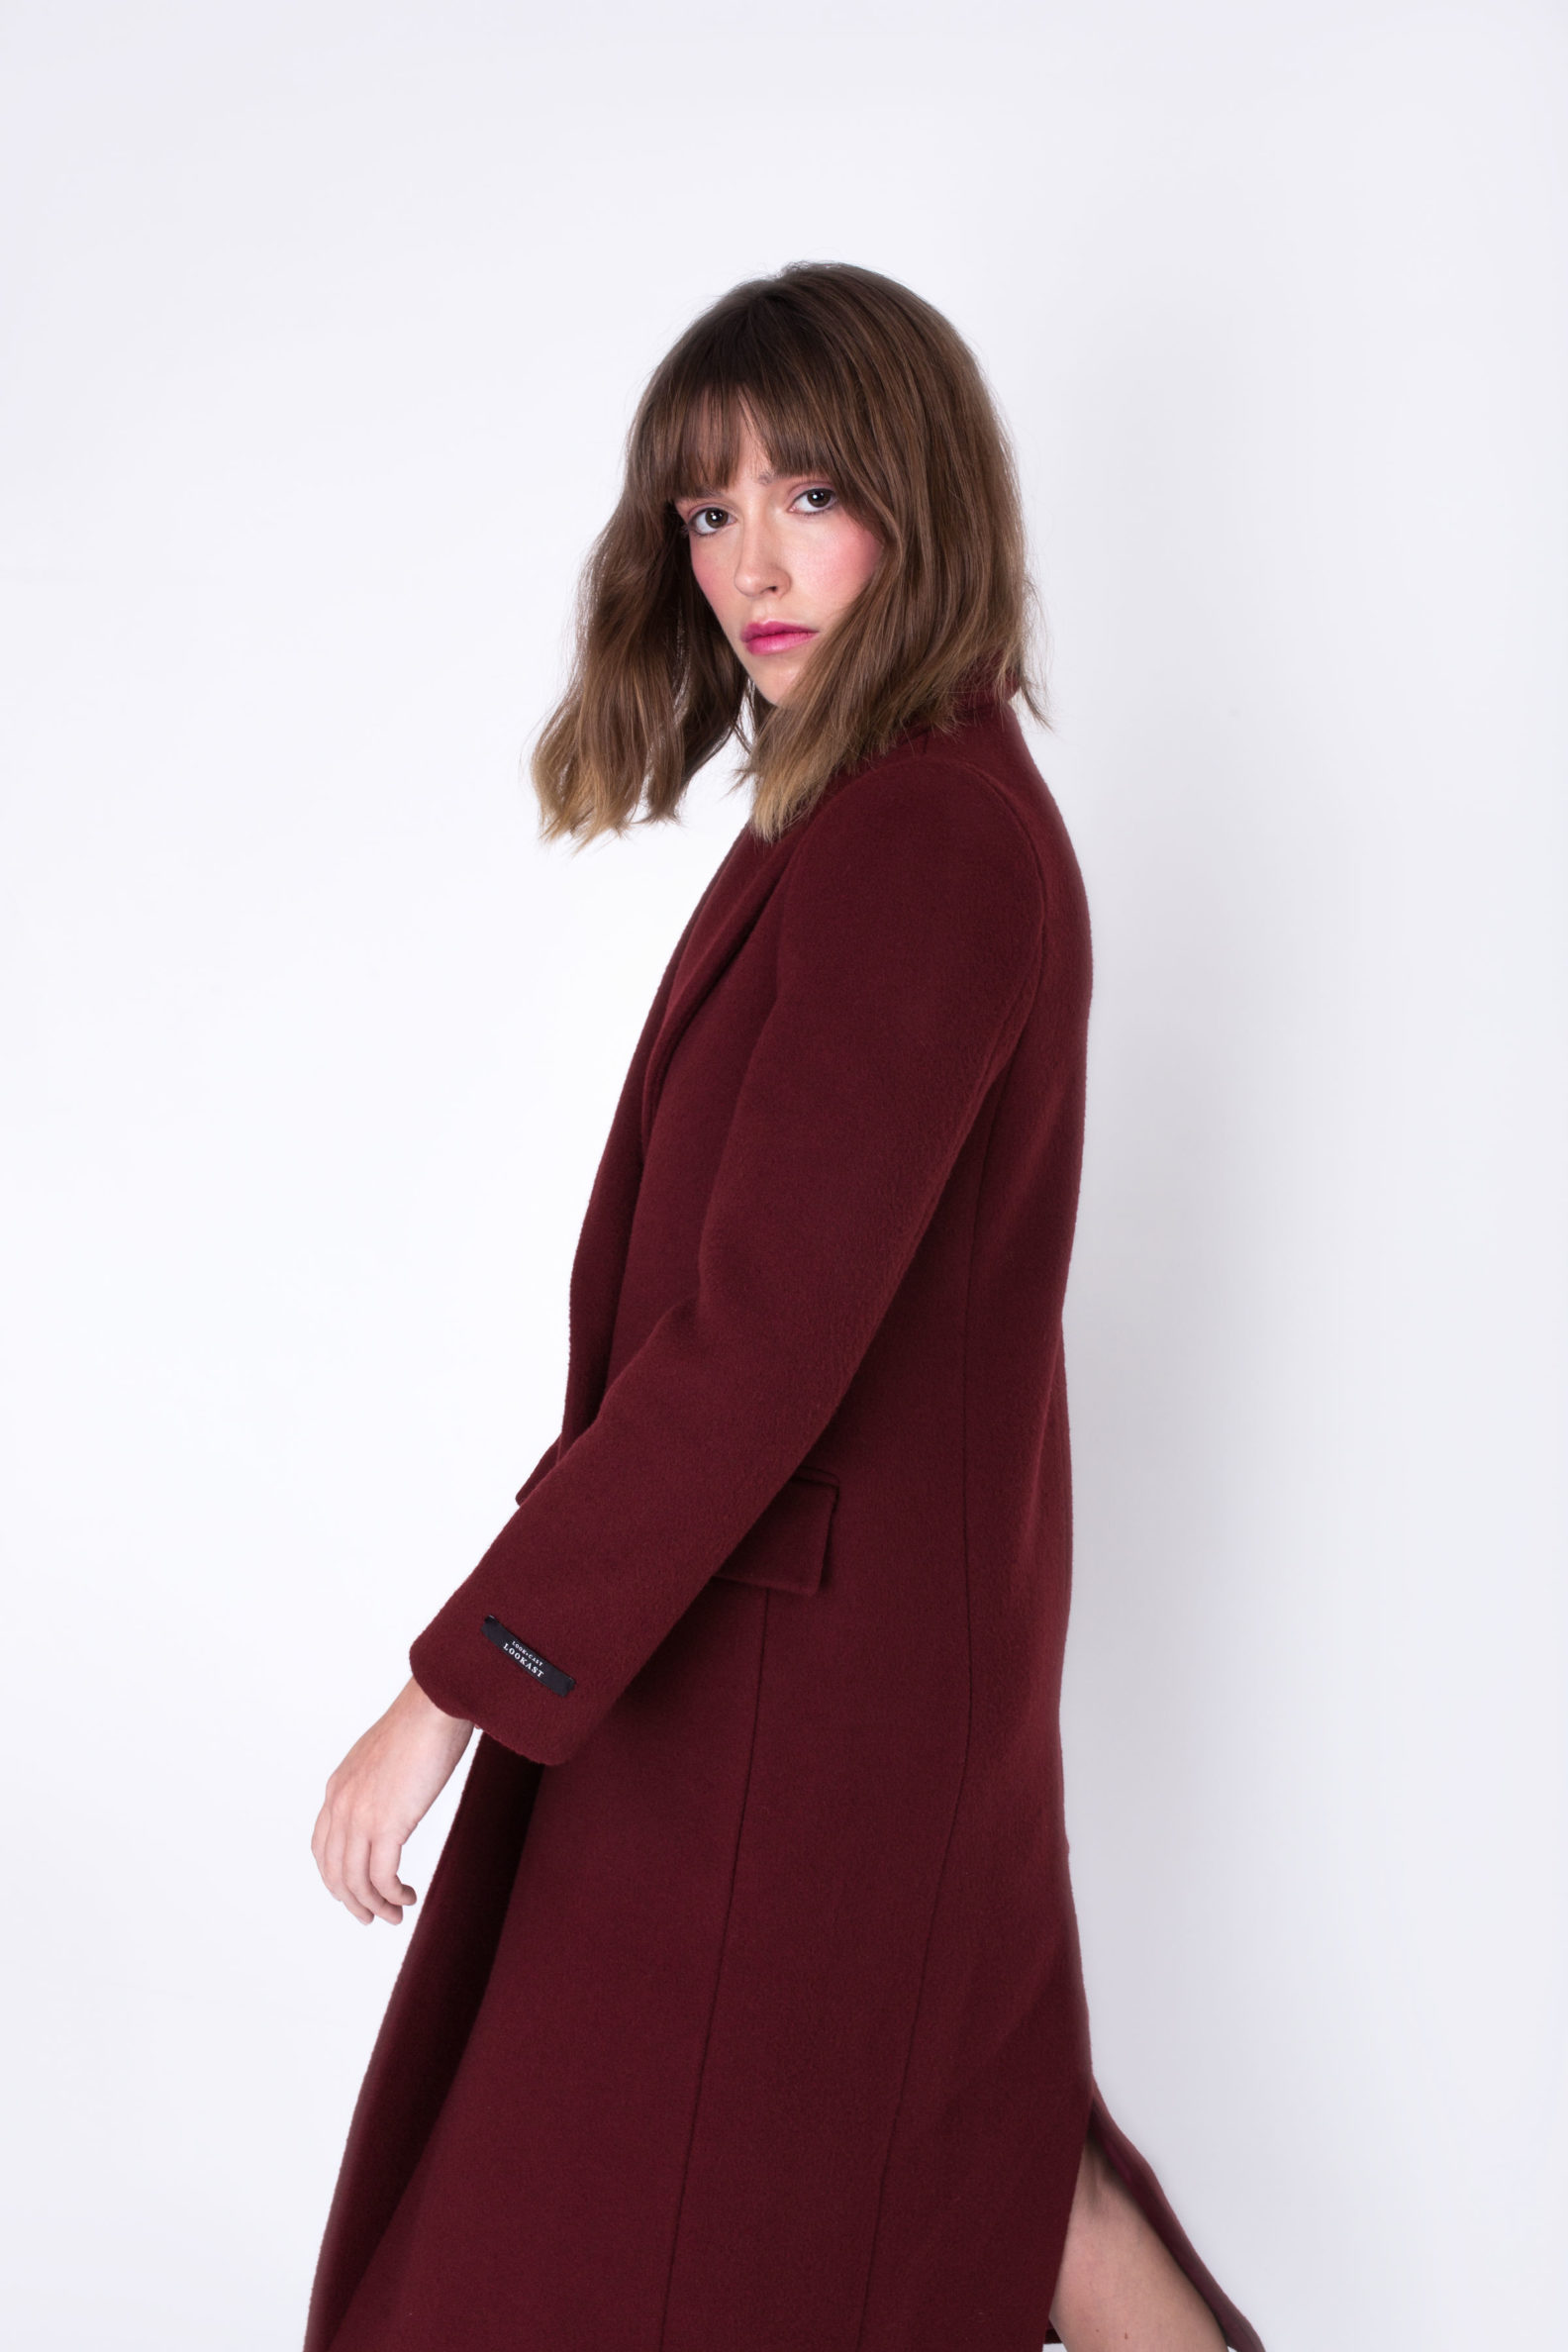 manteau-long-coat-en-laine-wool-croise-double-breasted-bordeaux-burgundy-lookast-kpop-mode-coreenne-affaires-etrangeres